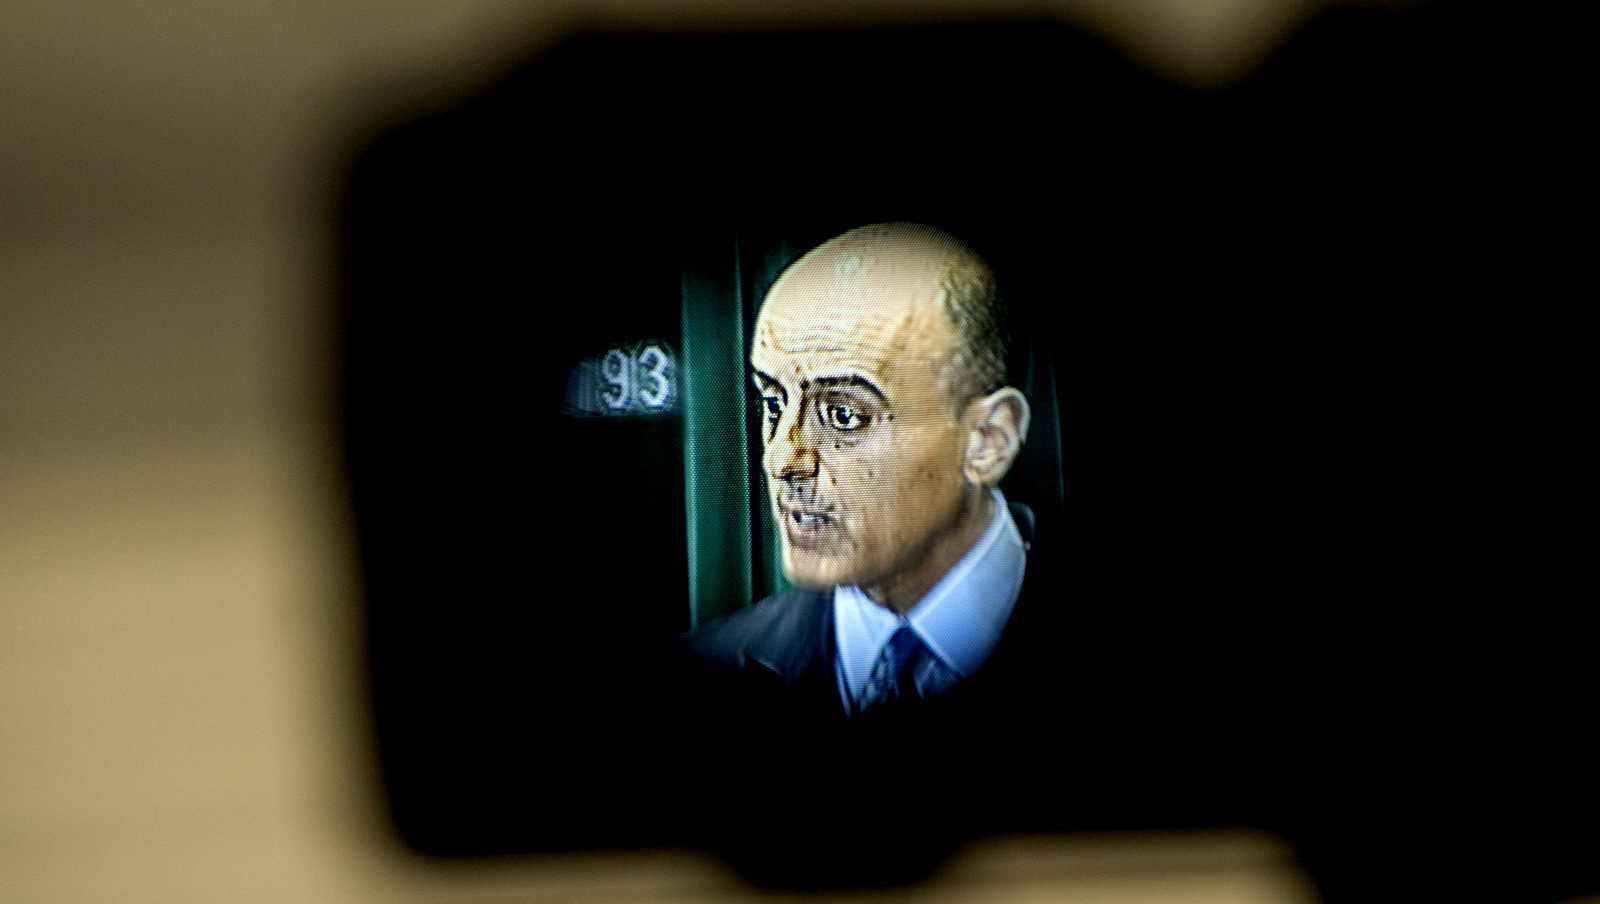 Seen in a video camera viewfinder, Saudi Arabian Ambassador Adel Al-Jubeir speaks about the Saudi military campaign in Yemen during a news conference at the Saudi Embassy in Washington, April 22, 2015. (AP/Jacquelyn Martin)